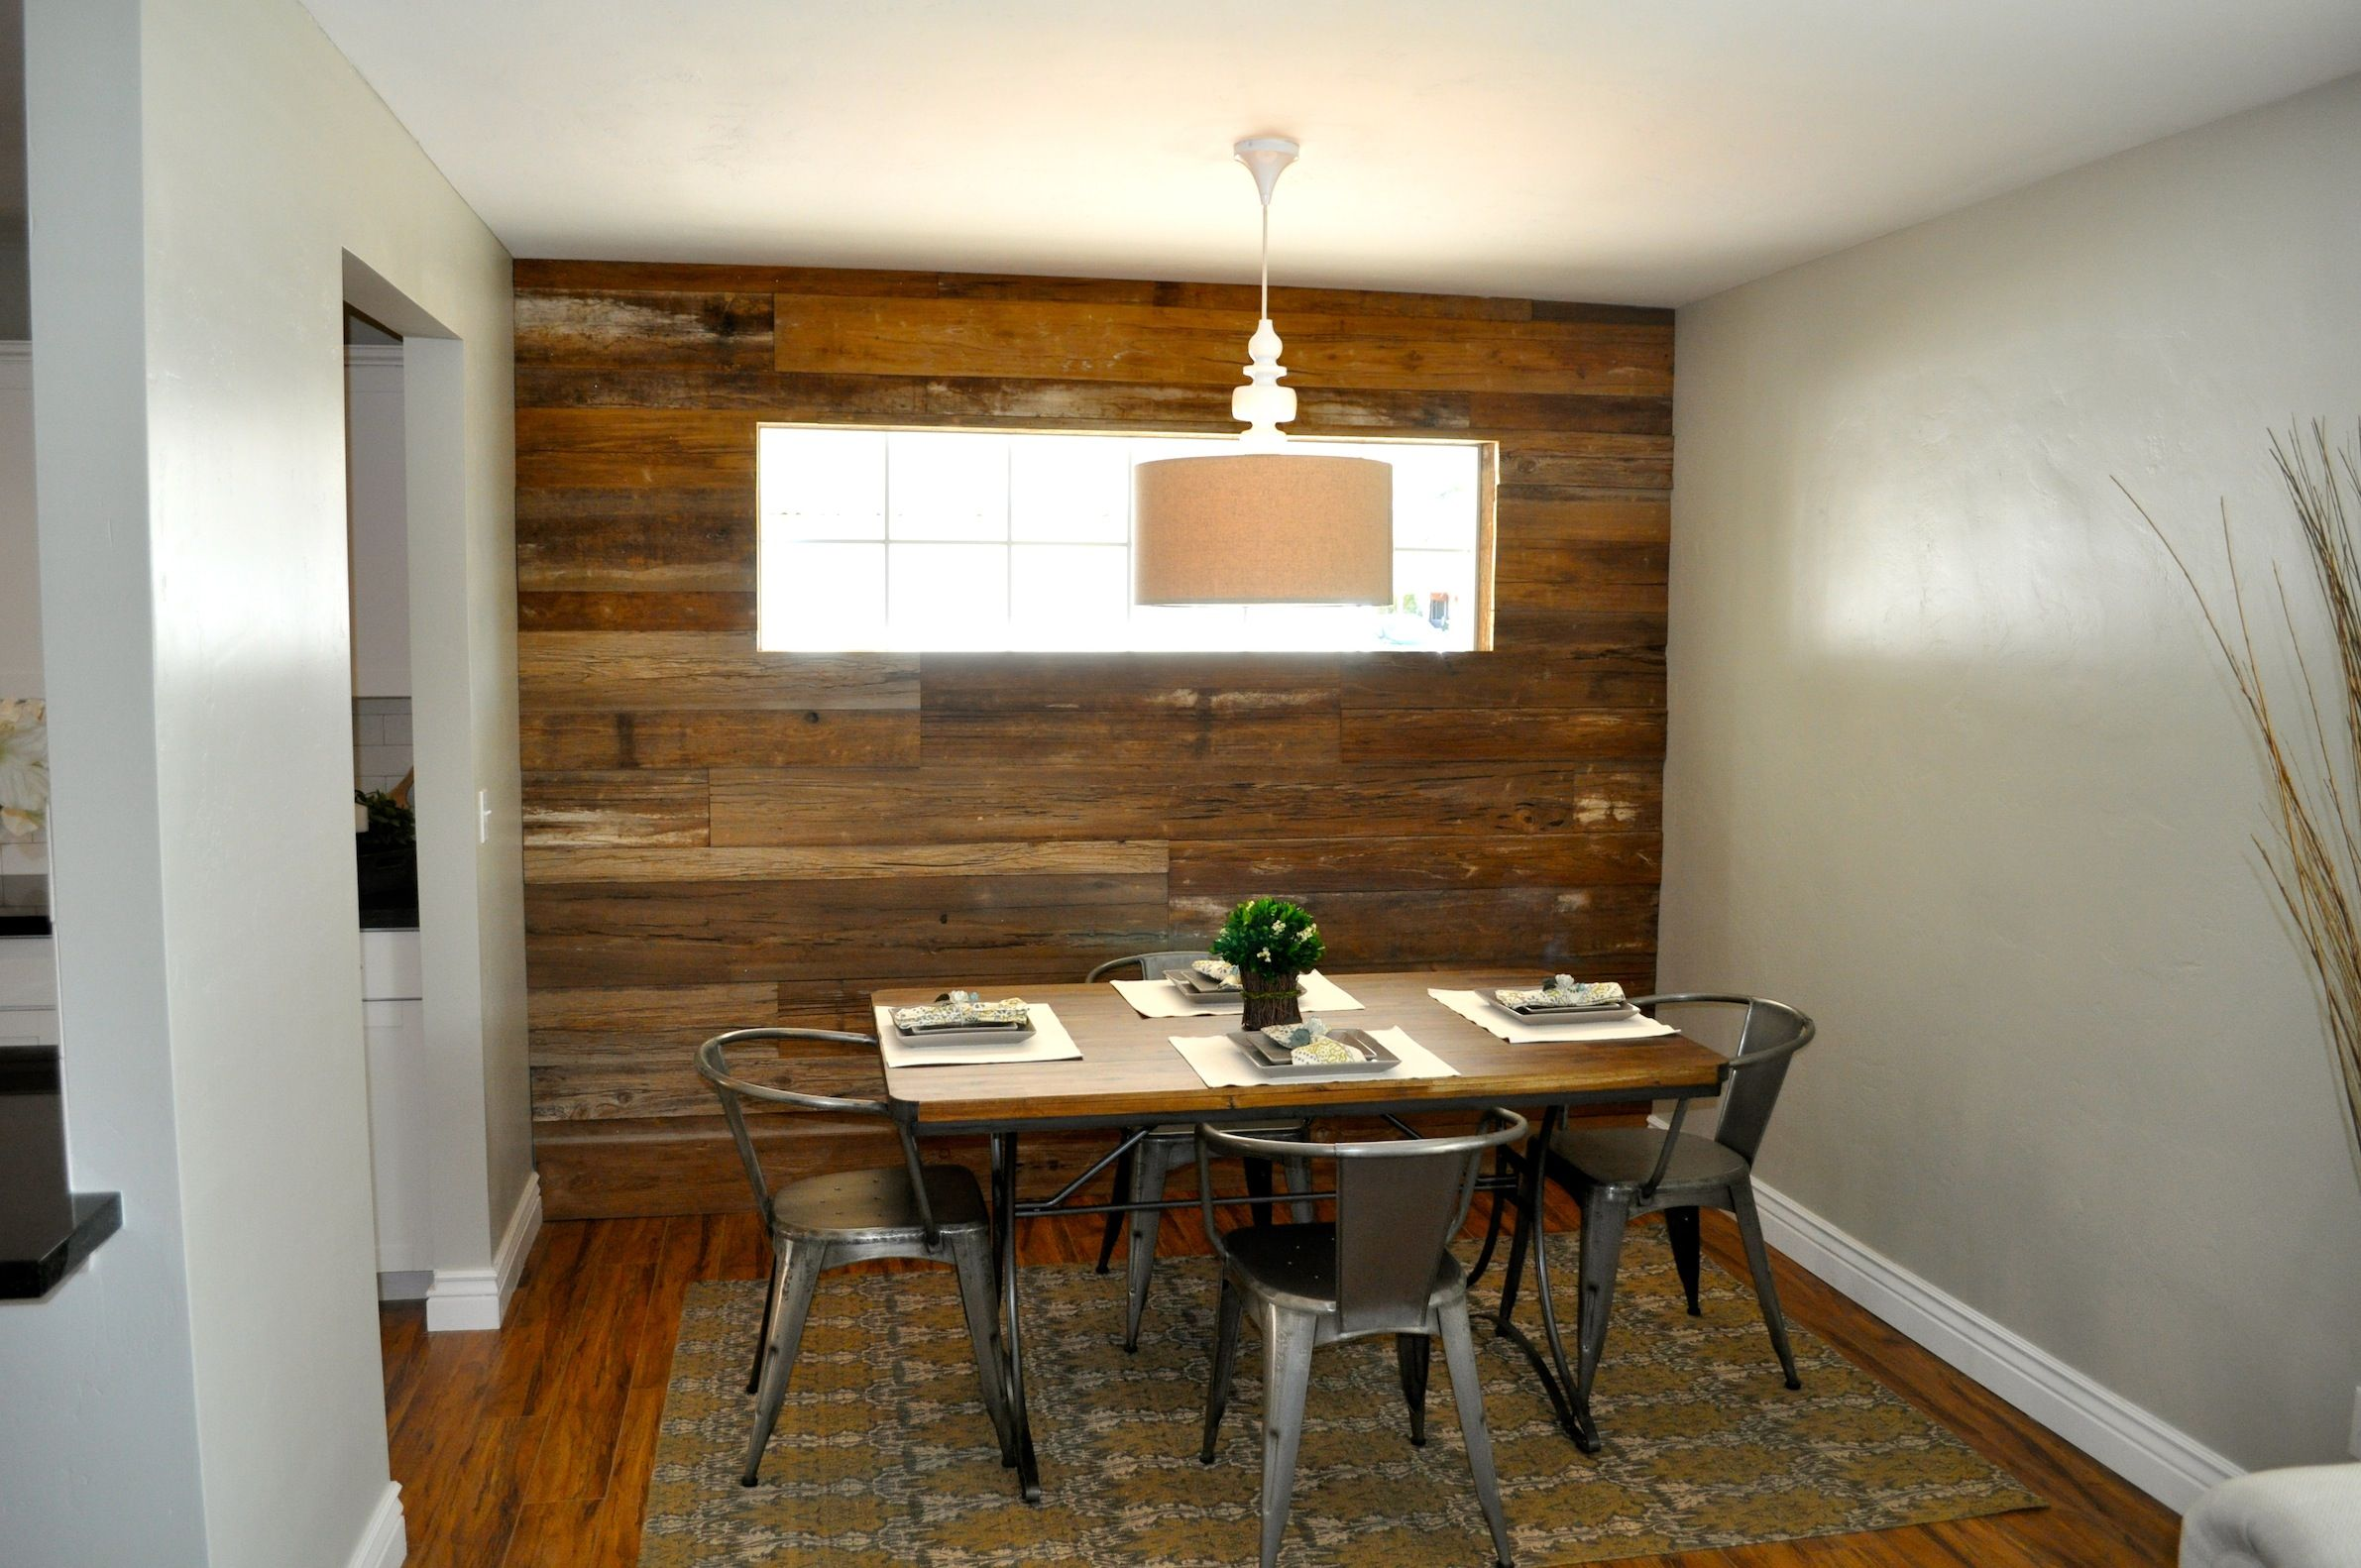 Barn wood accent wall by Rafterhouse RAFTERHOUSE INTERIORS